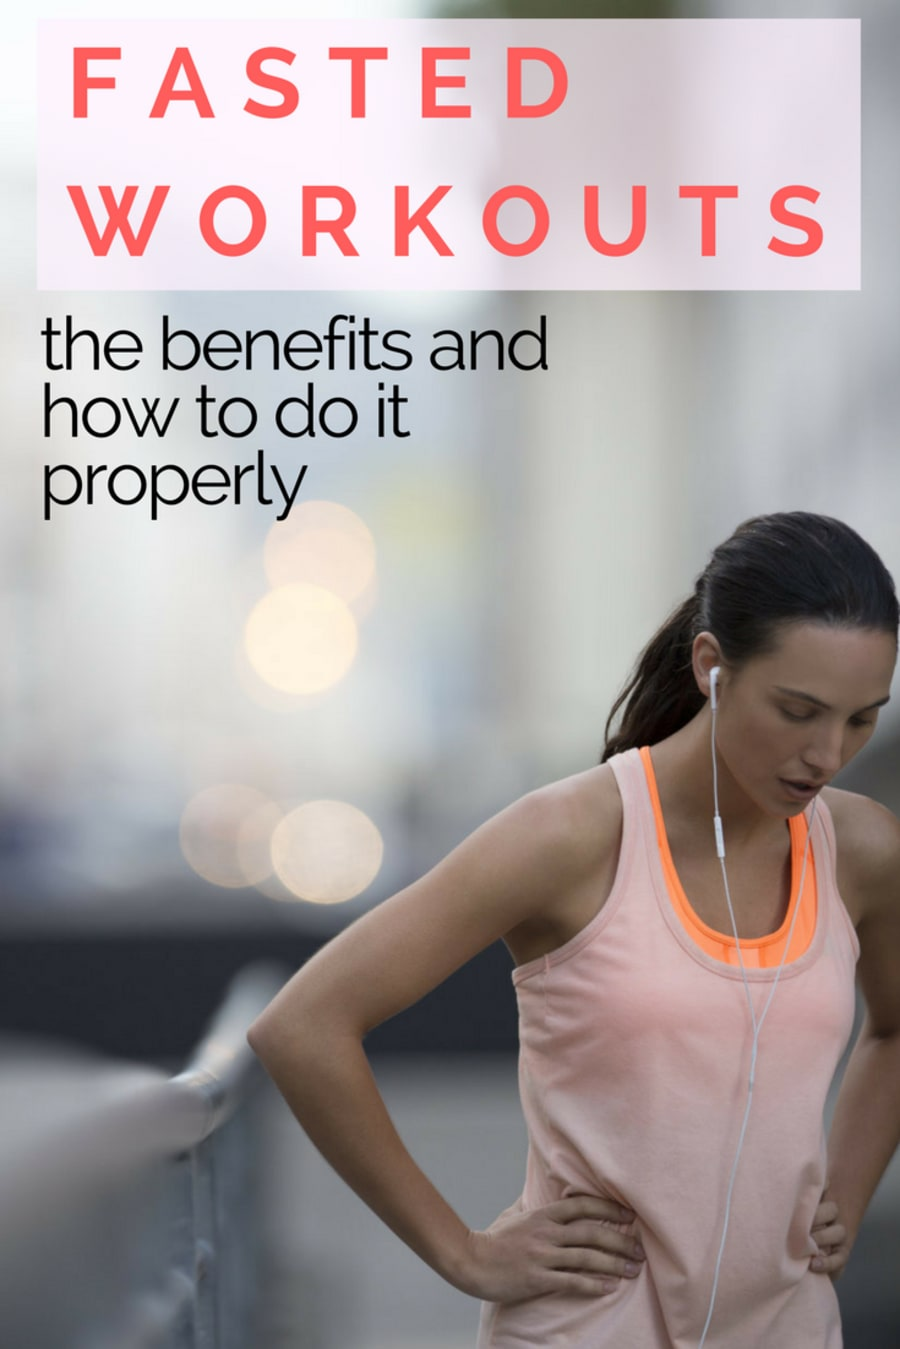 How Fasted Workouts Can Help You Achieve Fitness